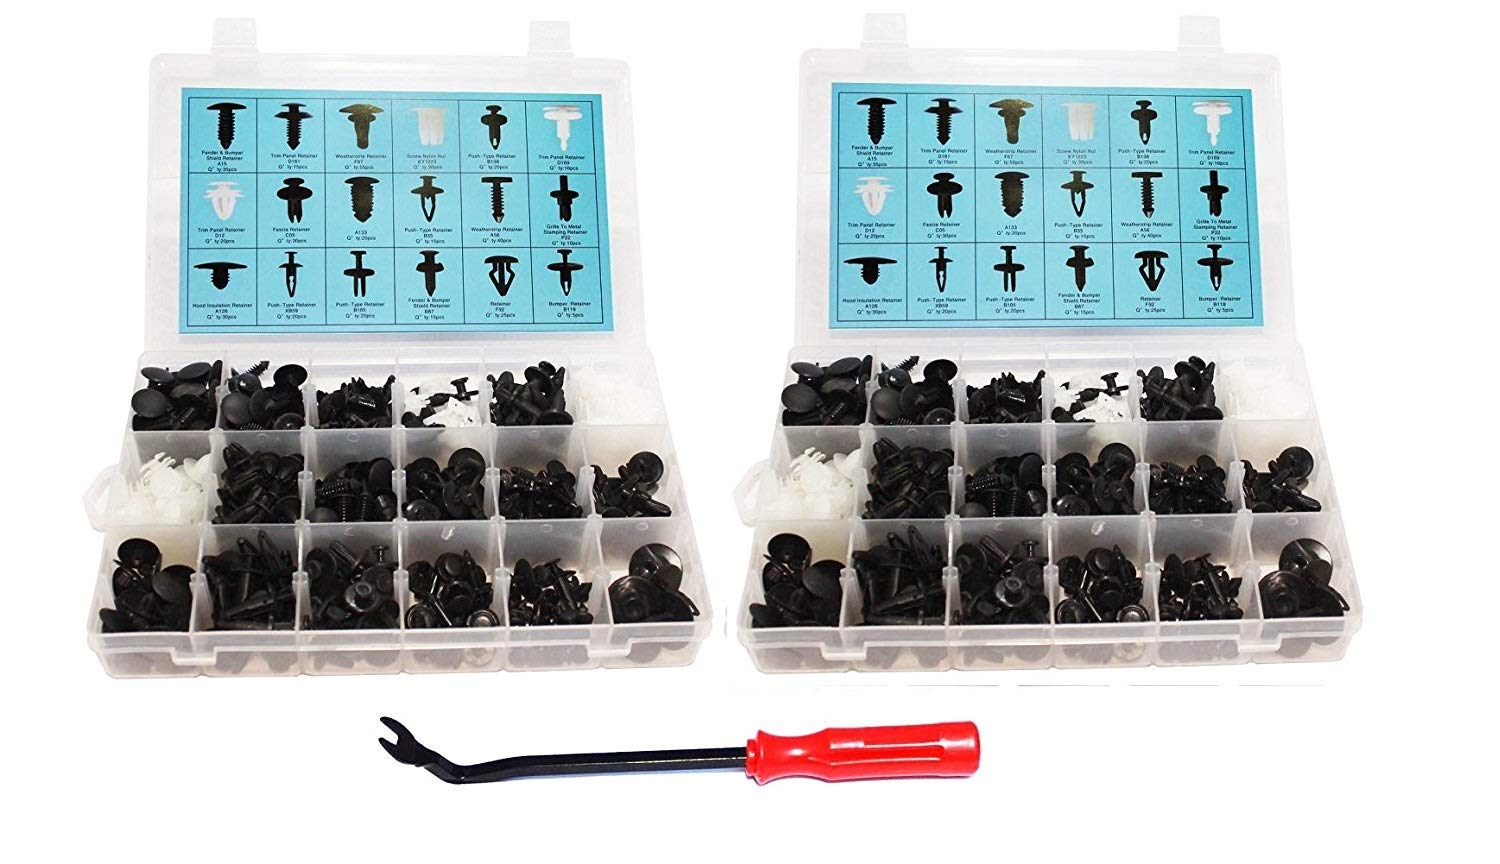 [415 Pcs & 415 Pcs] Auto Push Clips & Fasteners Set, Free Fastener Remover,Great Assortment of Push Type Retainers Fits For GM Ford Toyota Honda Chrysler with Plastic Storage Case